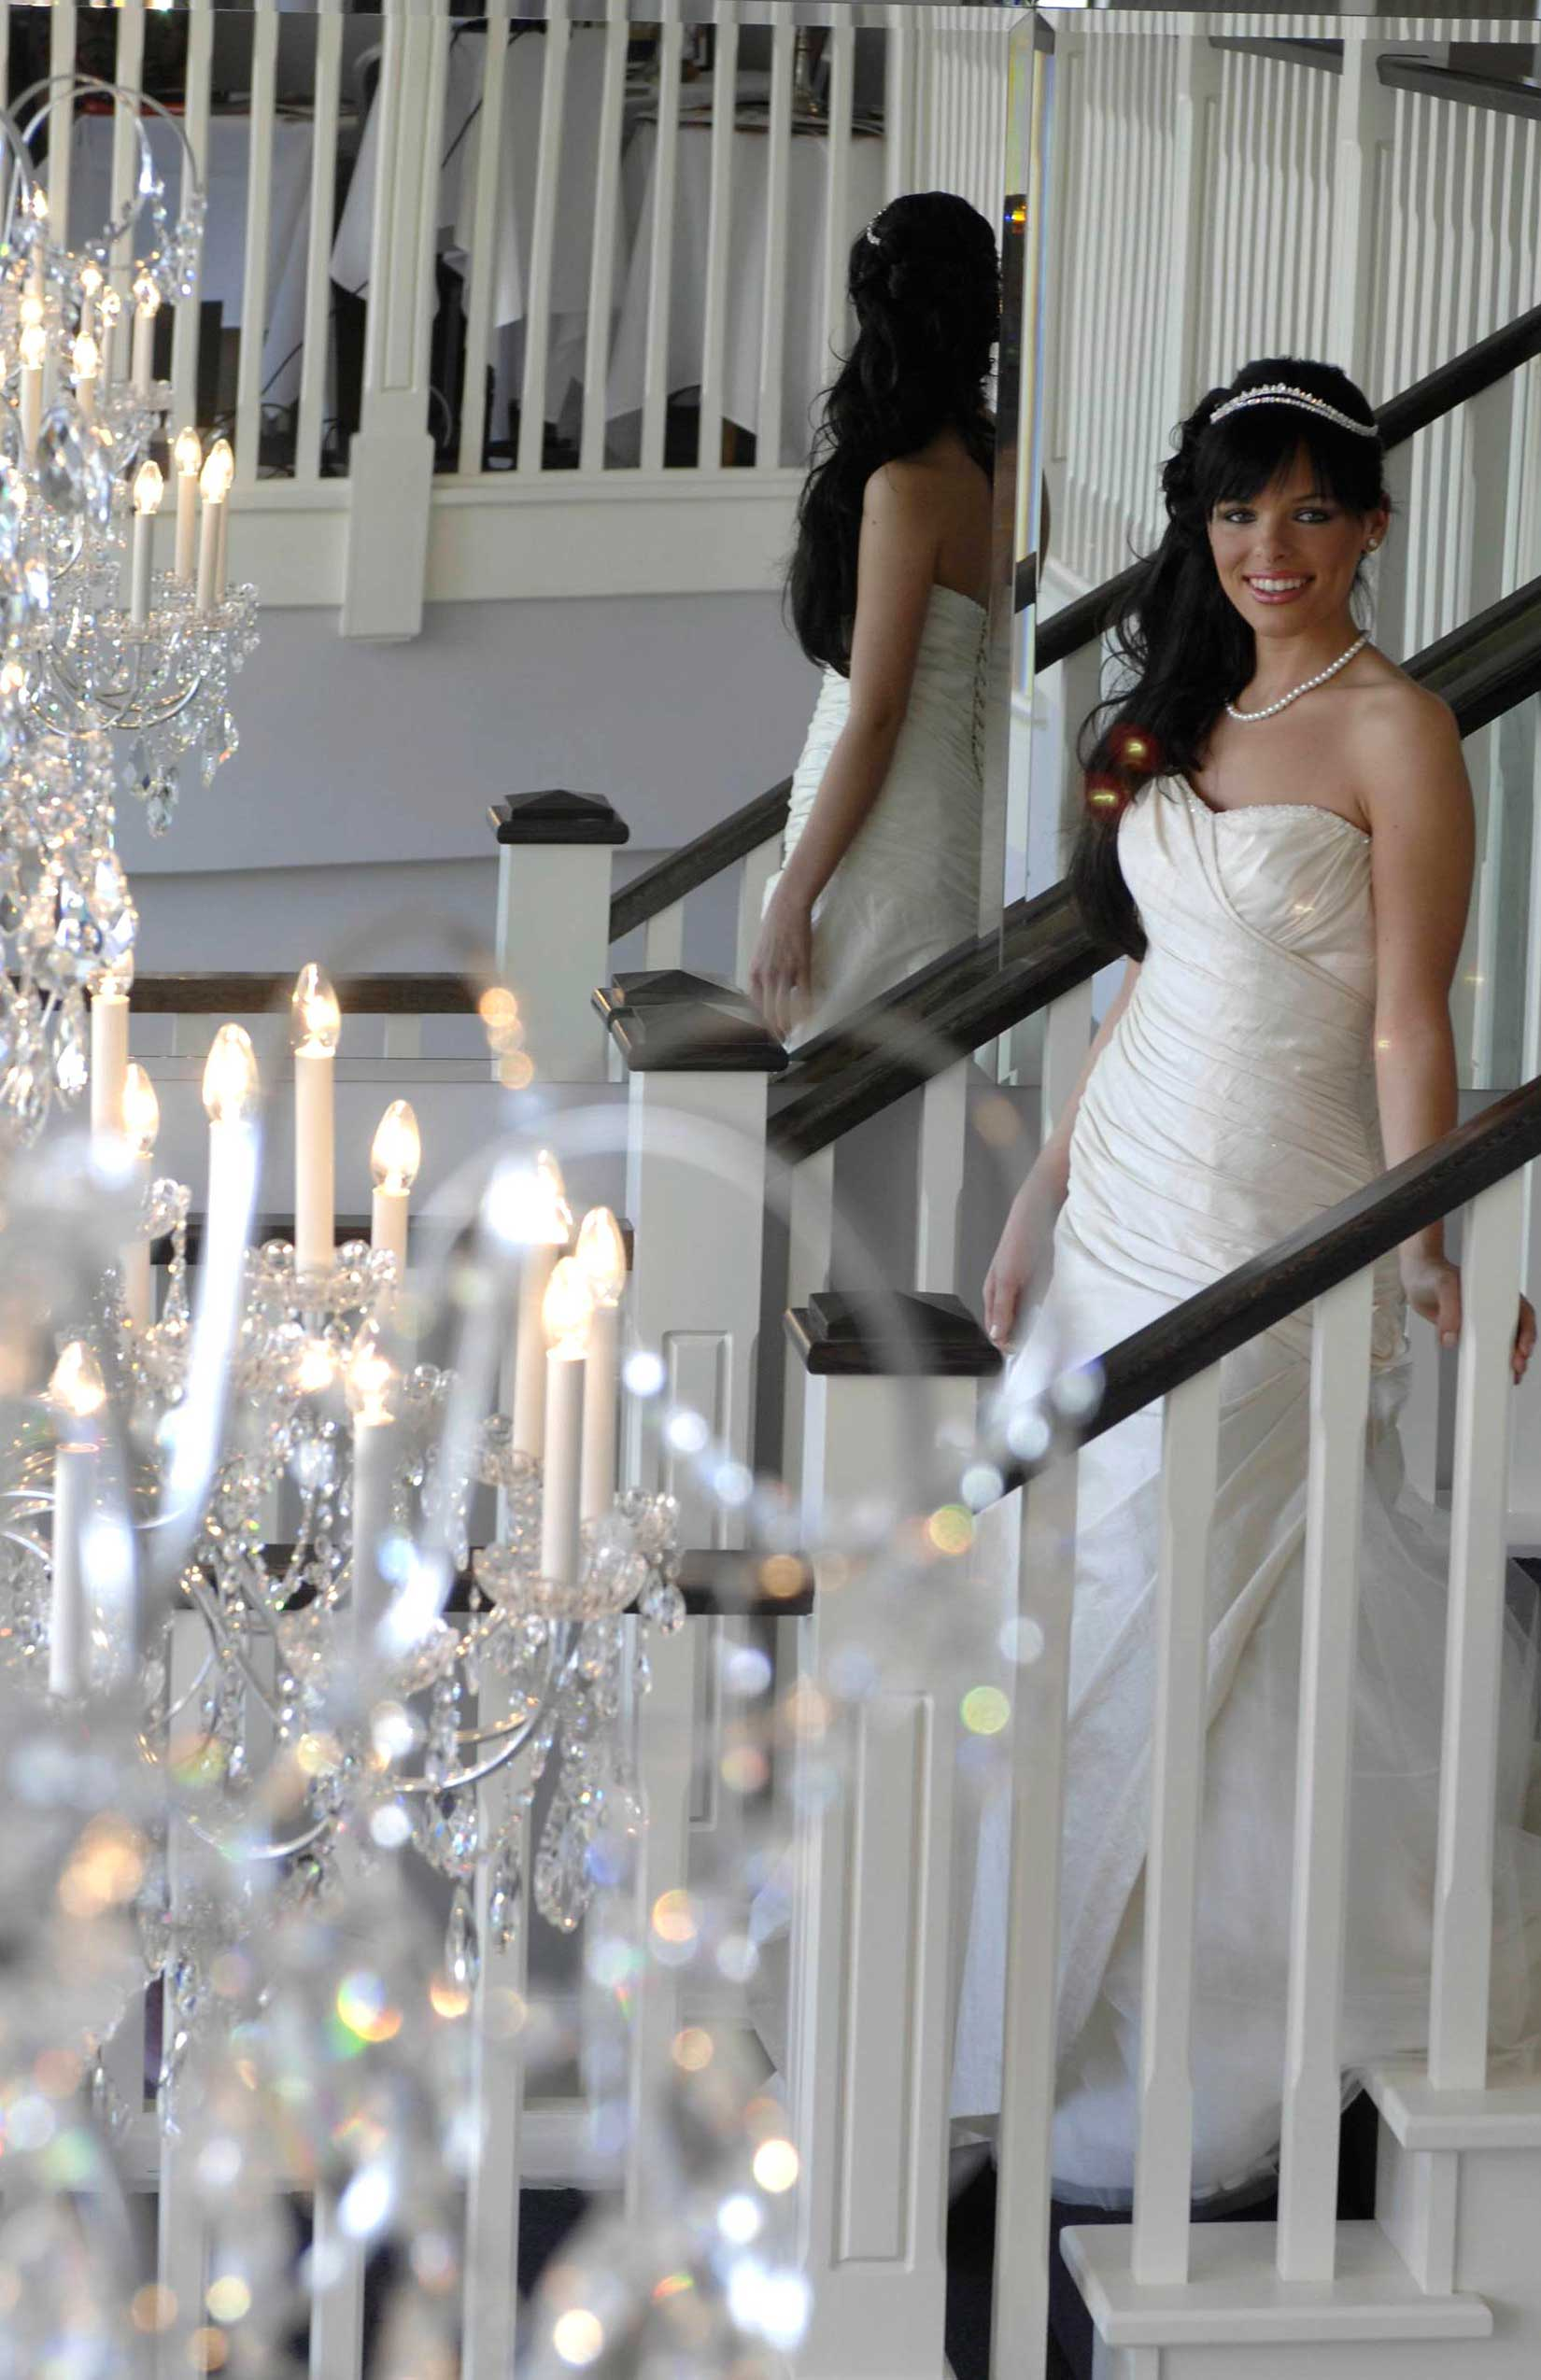 kenmare wedding venue